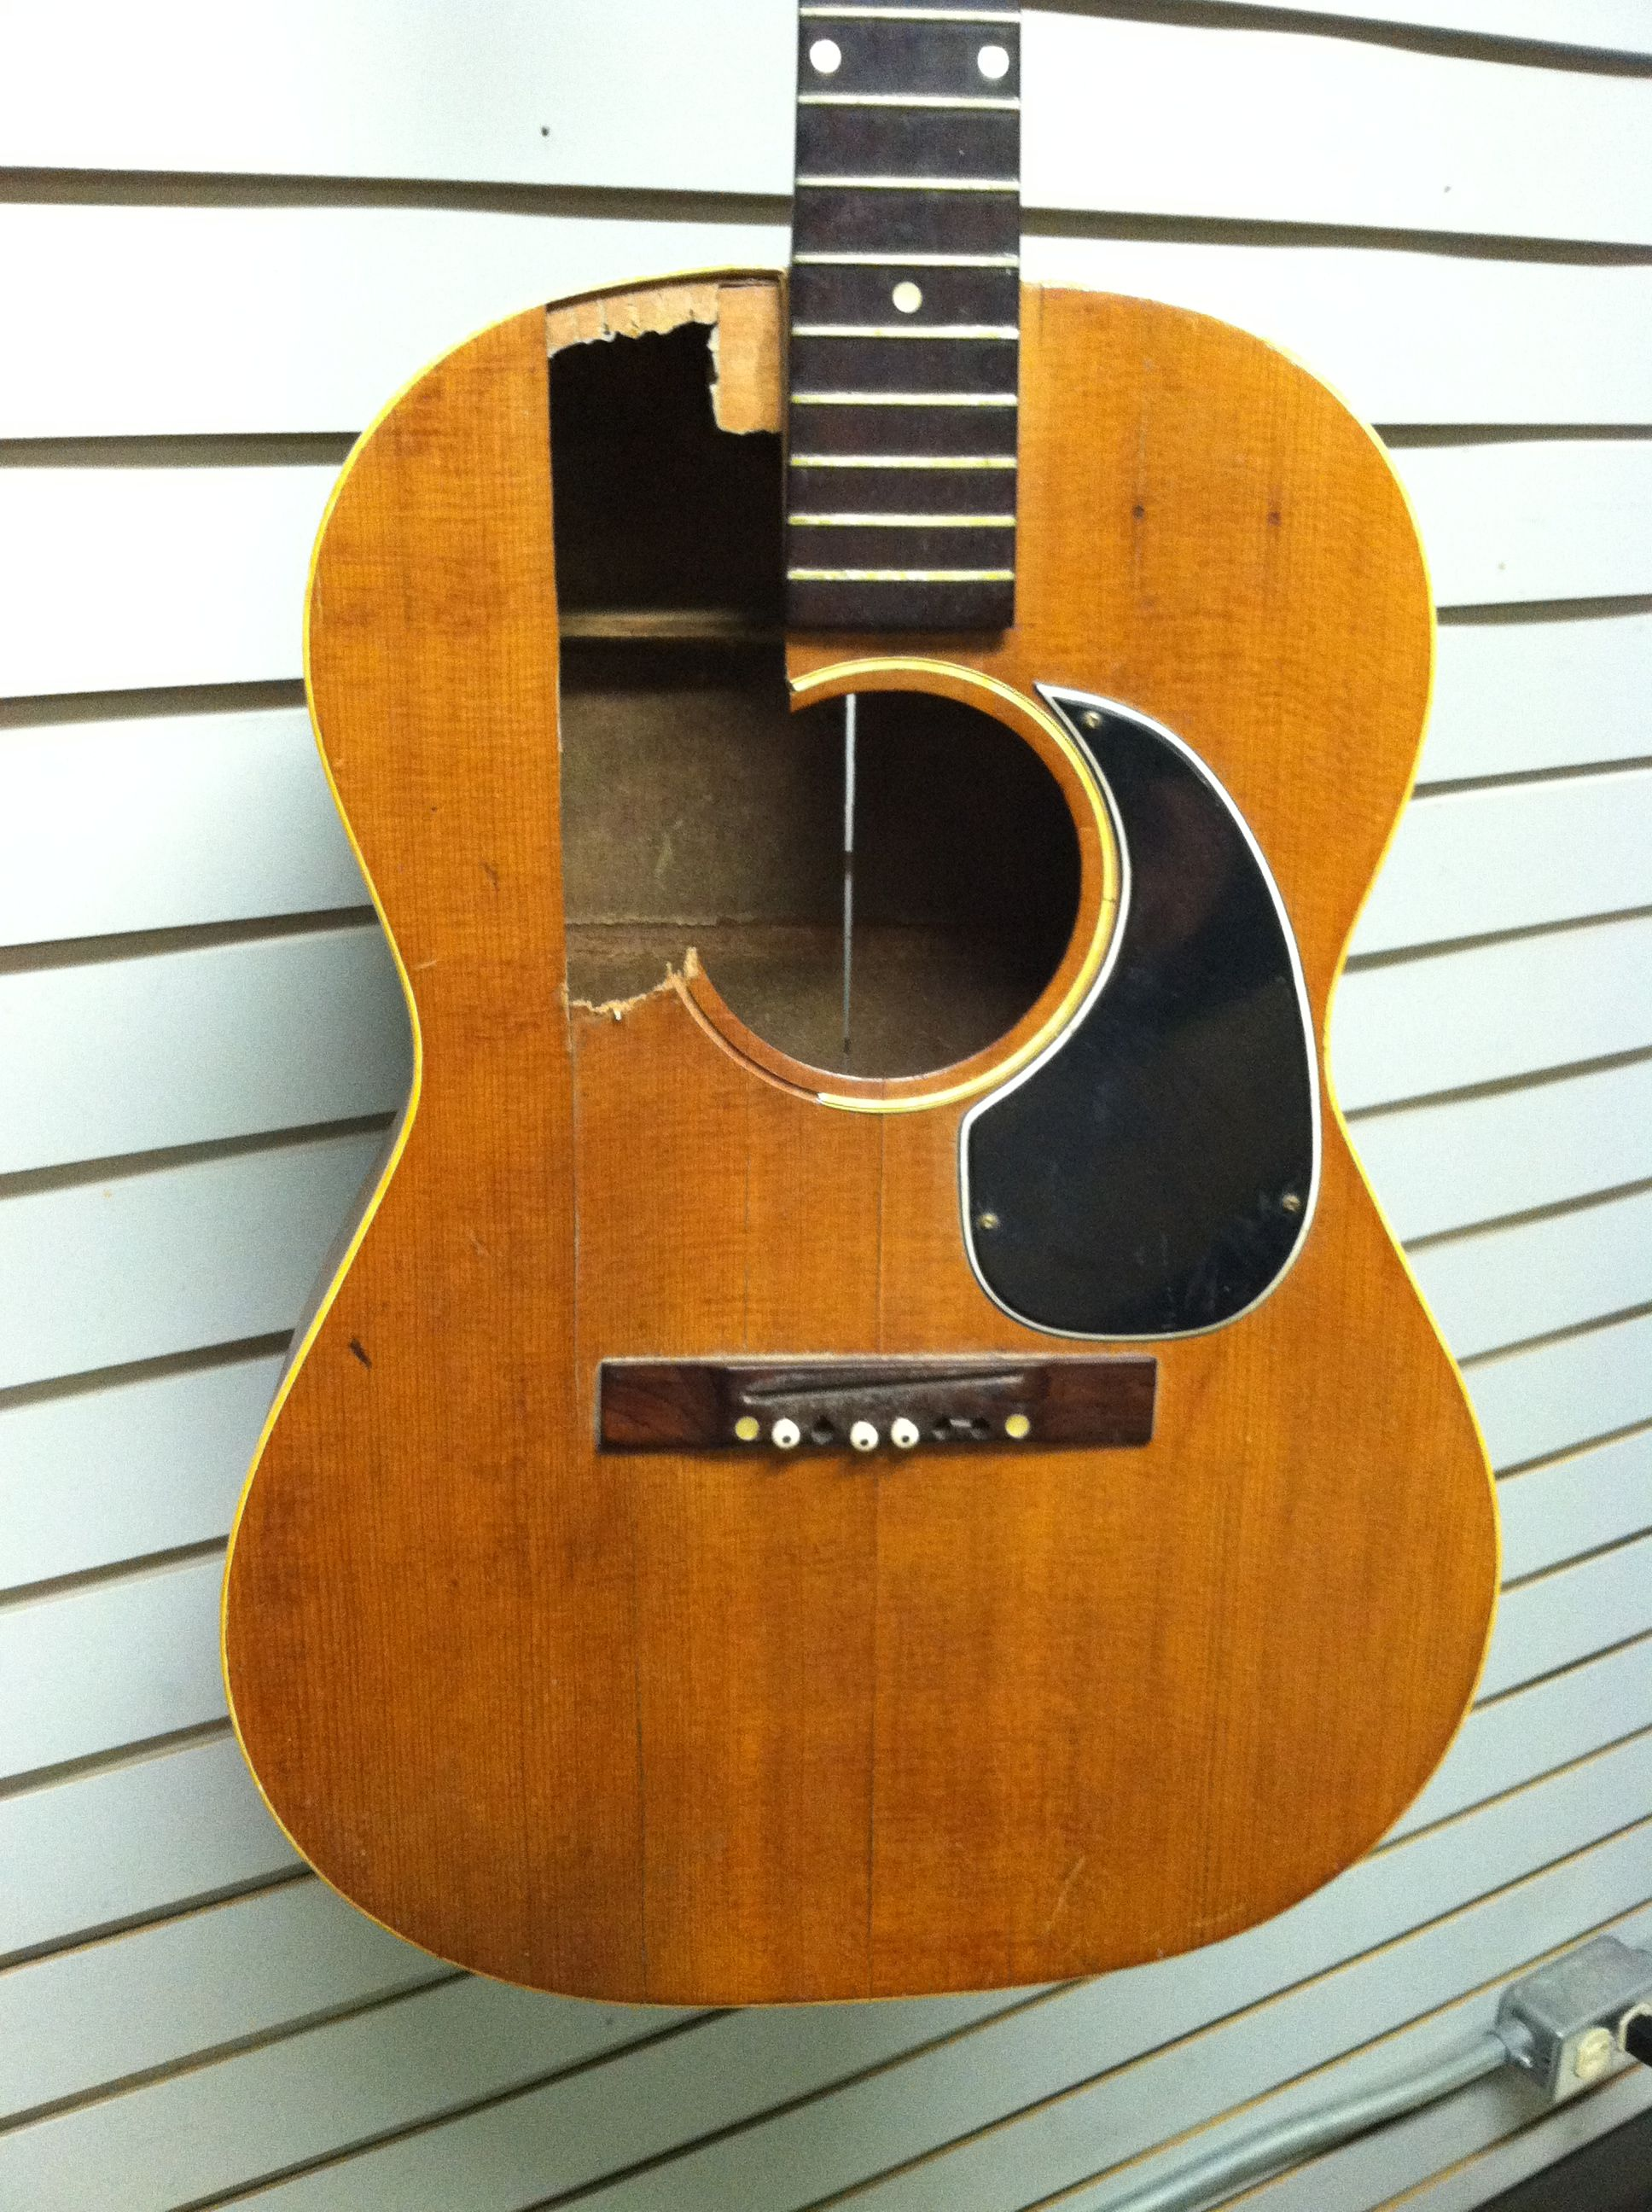 vintage 1960 39 s gibson l1 with a modified soundhole the white line in the middle of the. Black Bedroom Furniture Sets. Home Design Ideas